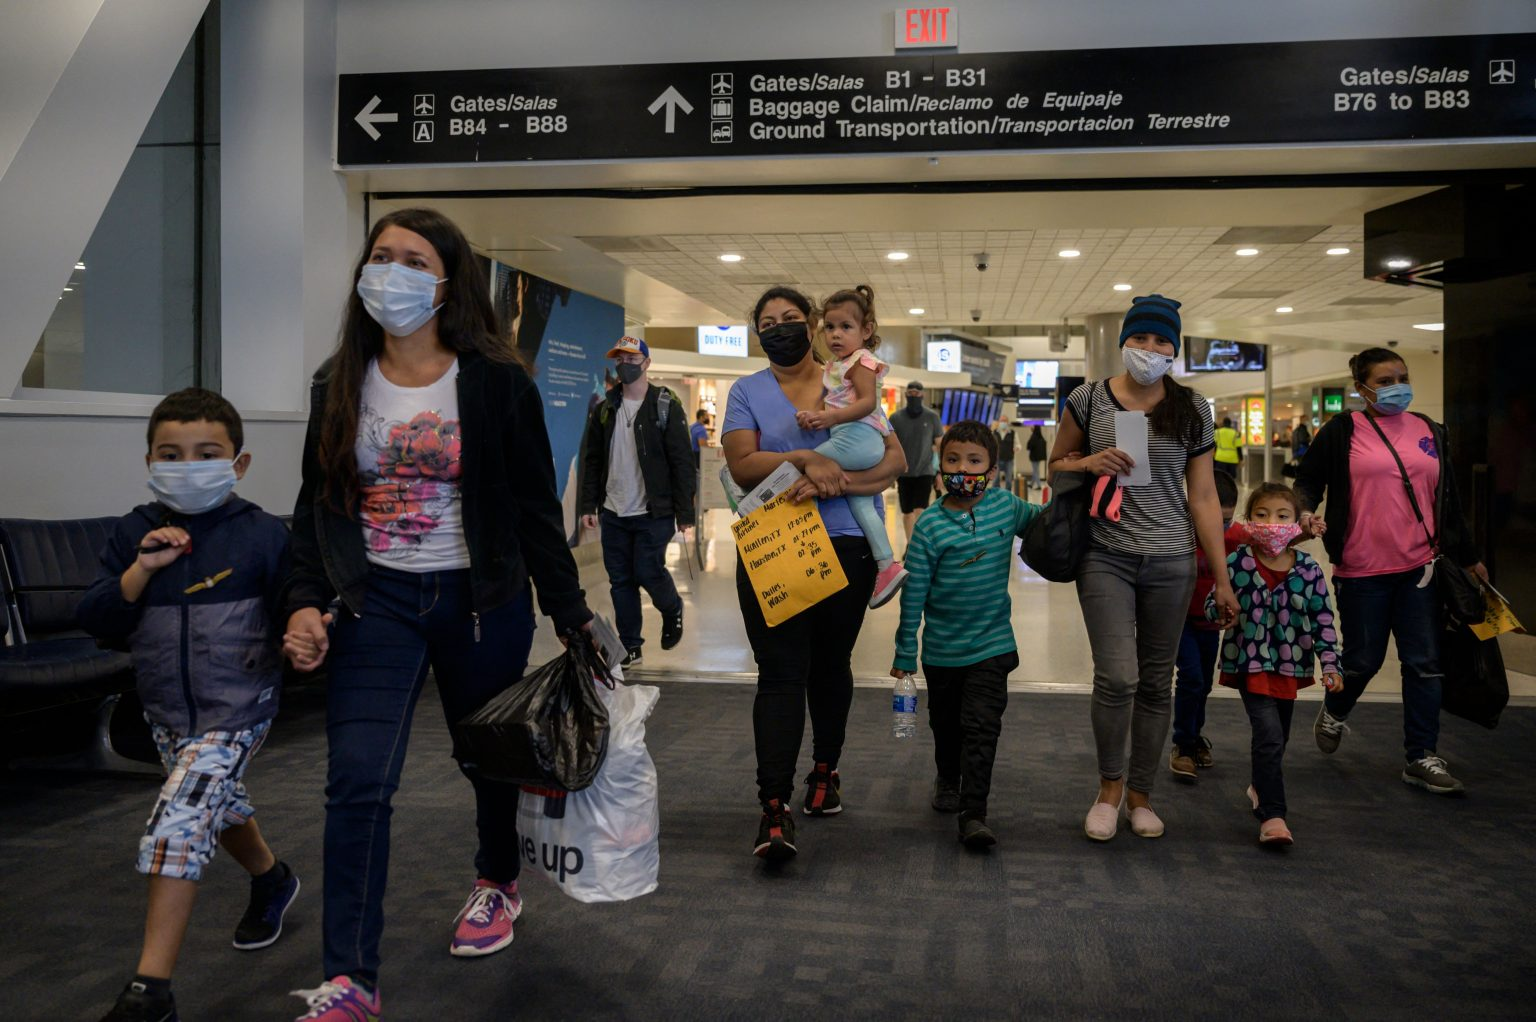 Parent and child Asylum seekers arrive in the US. at an airport